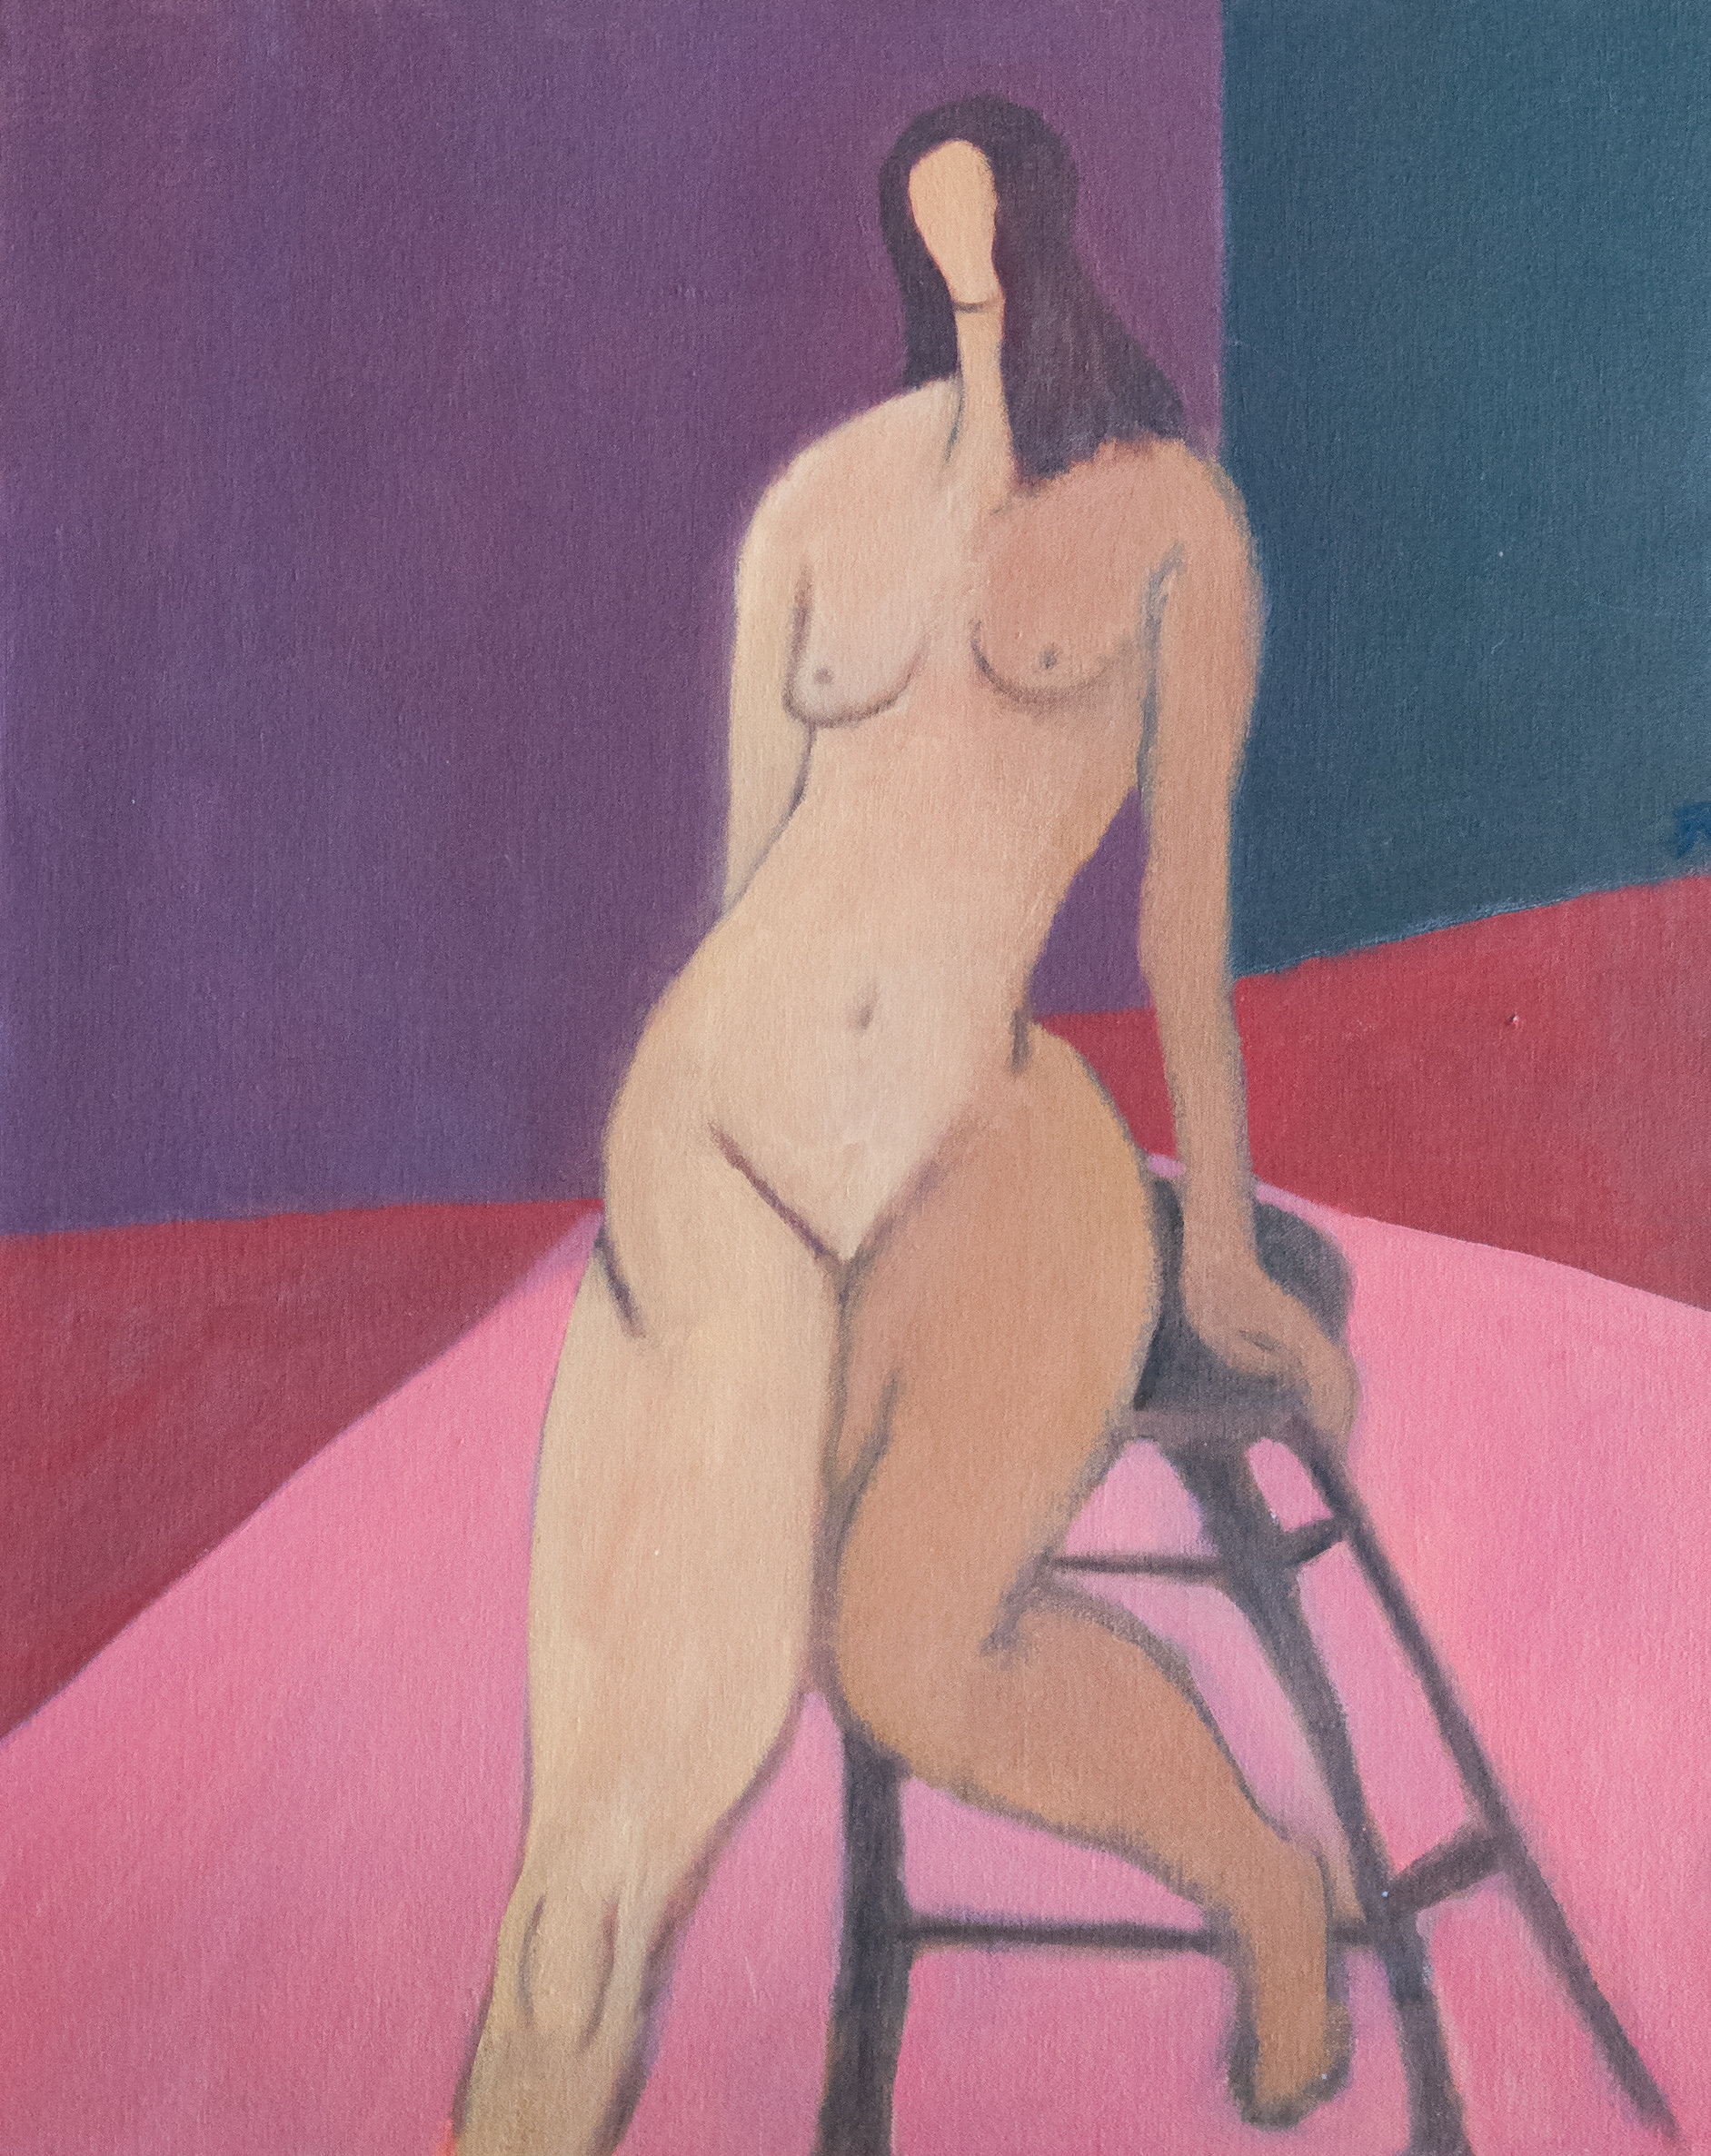 Nude Model Painting by Jerry Cantwell